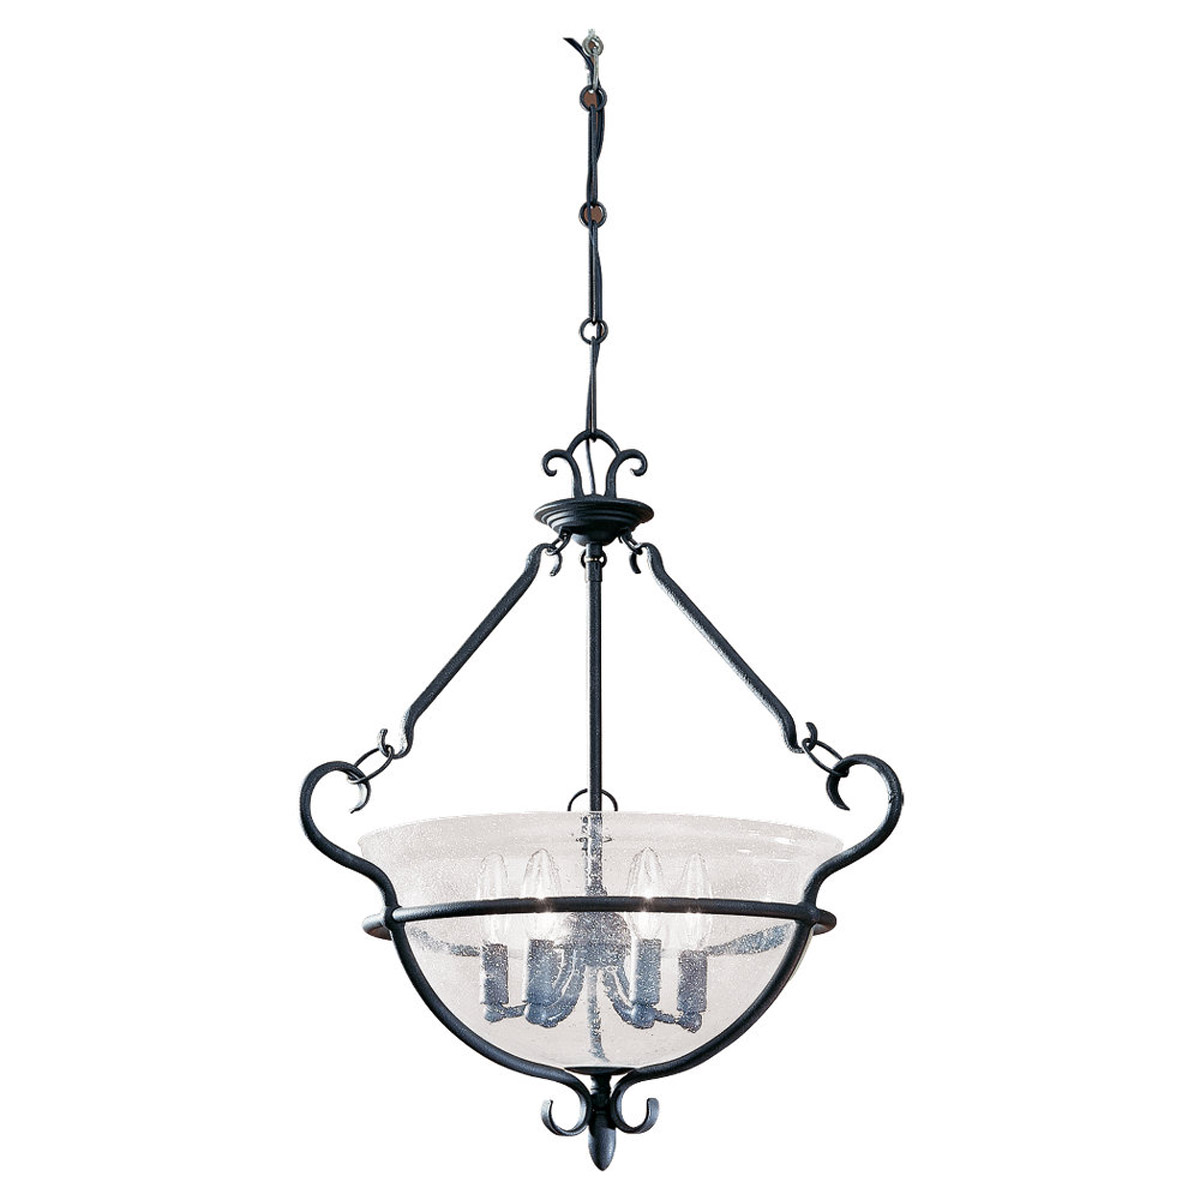 Sea Gull Lighting Manor House 6 Light Pendant in Weathered Iron 6501-07